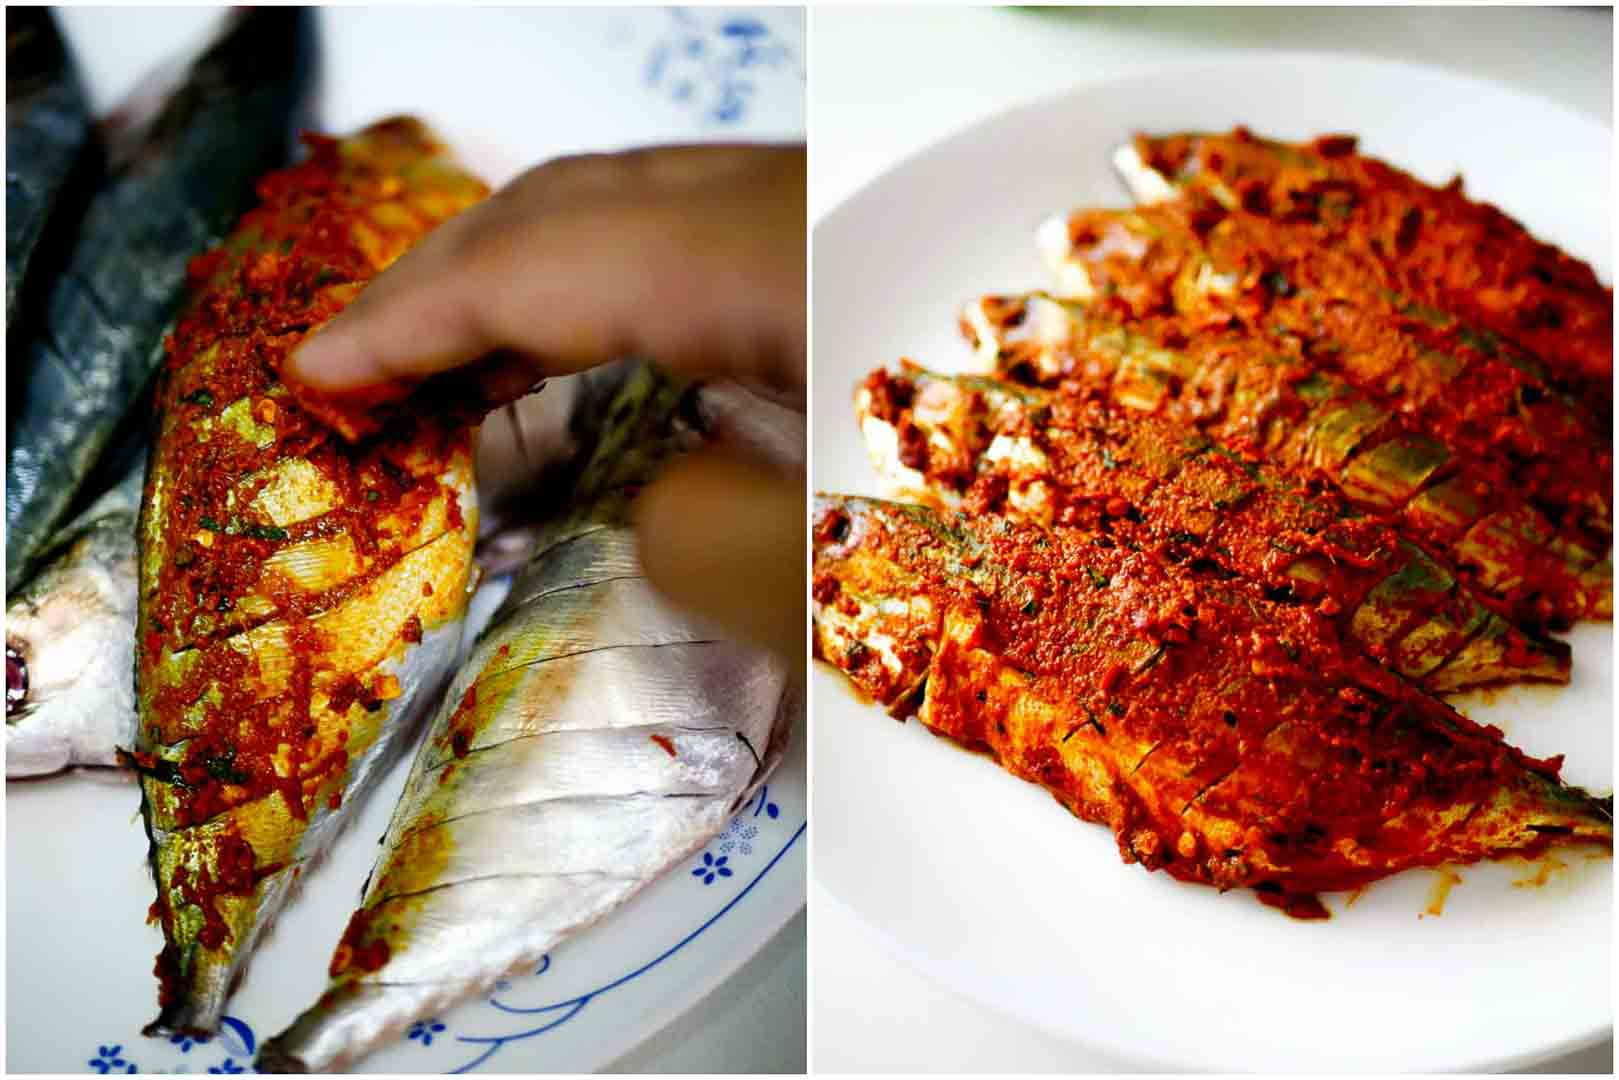 masala-fish-fry-recipe-ayala-meen-Mackerel-fry (6)